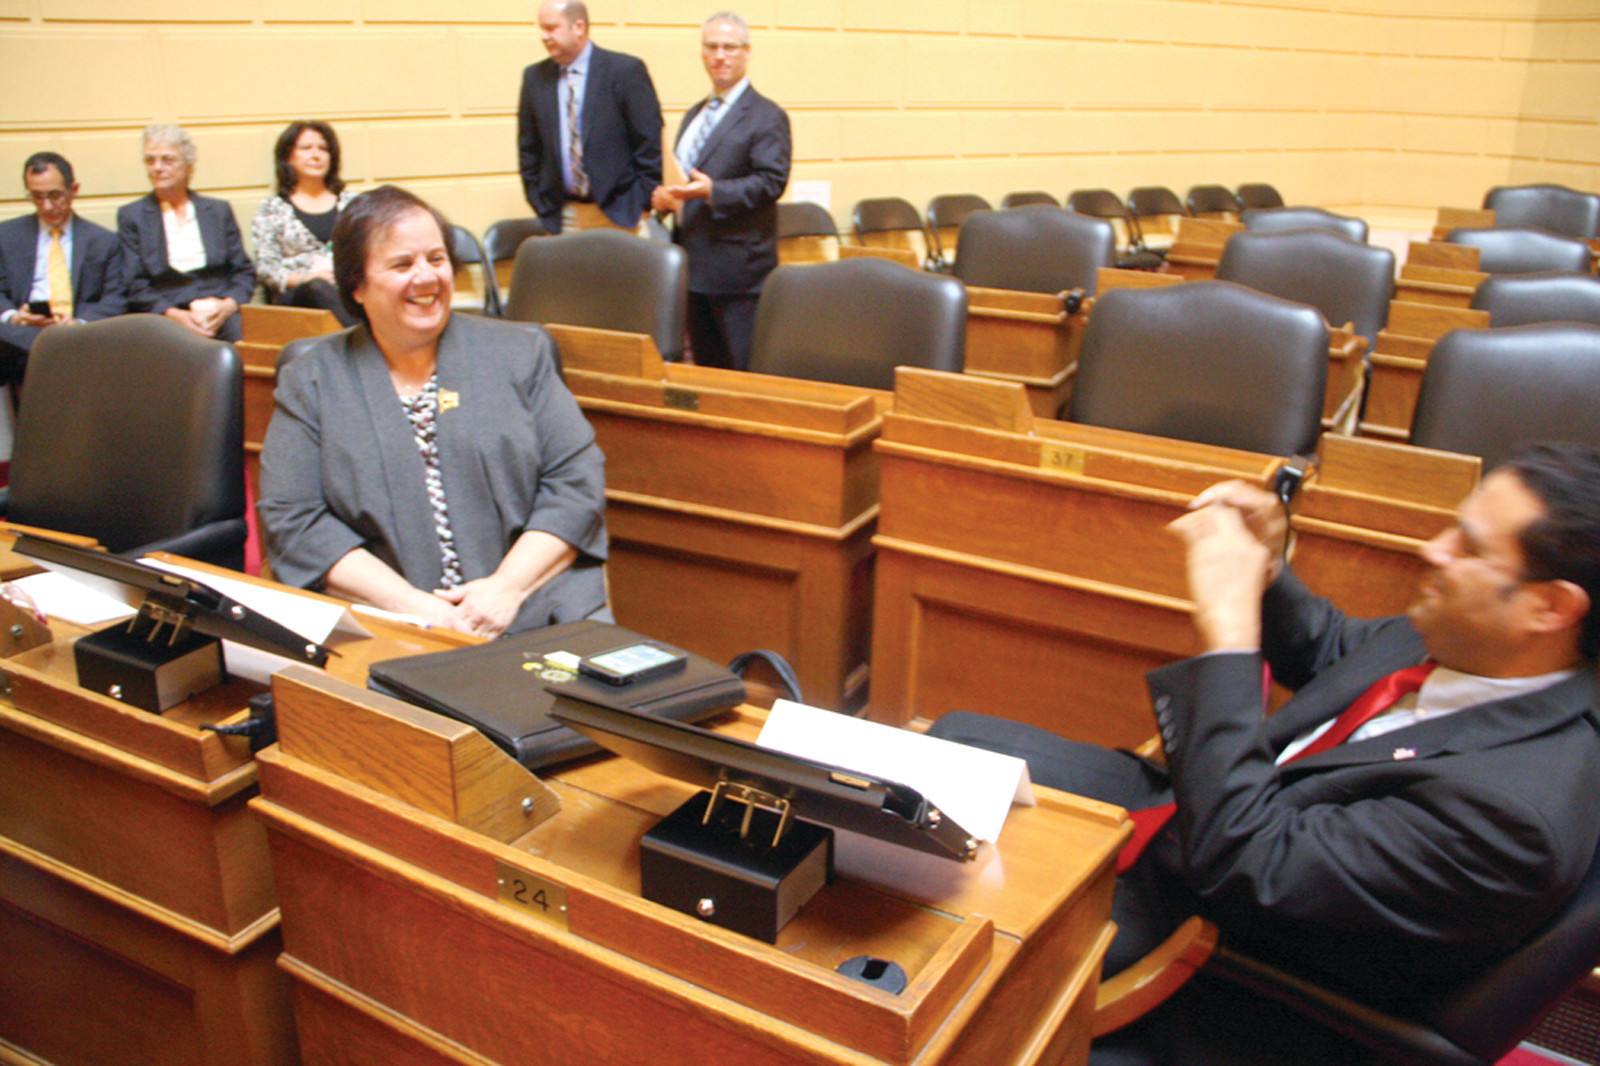 IN THE SHOT: Camille Vella-Wilkson has her smile recorded as she acclimates to her soon-to-be new surroundings at the State House of Representatives.